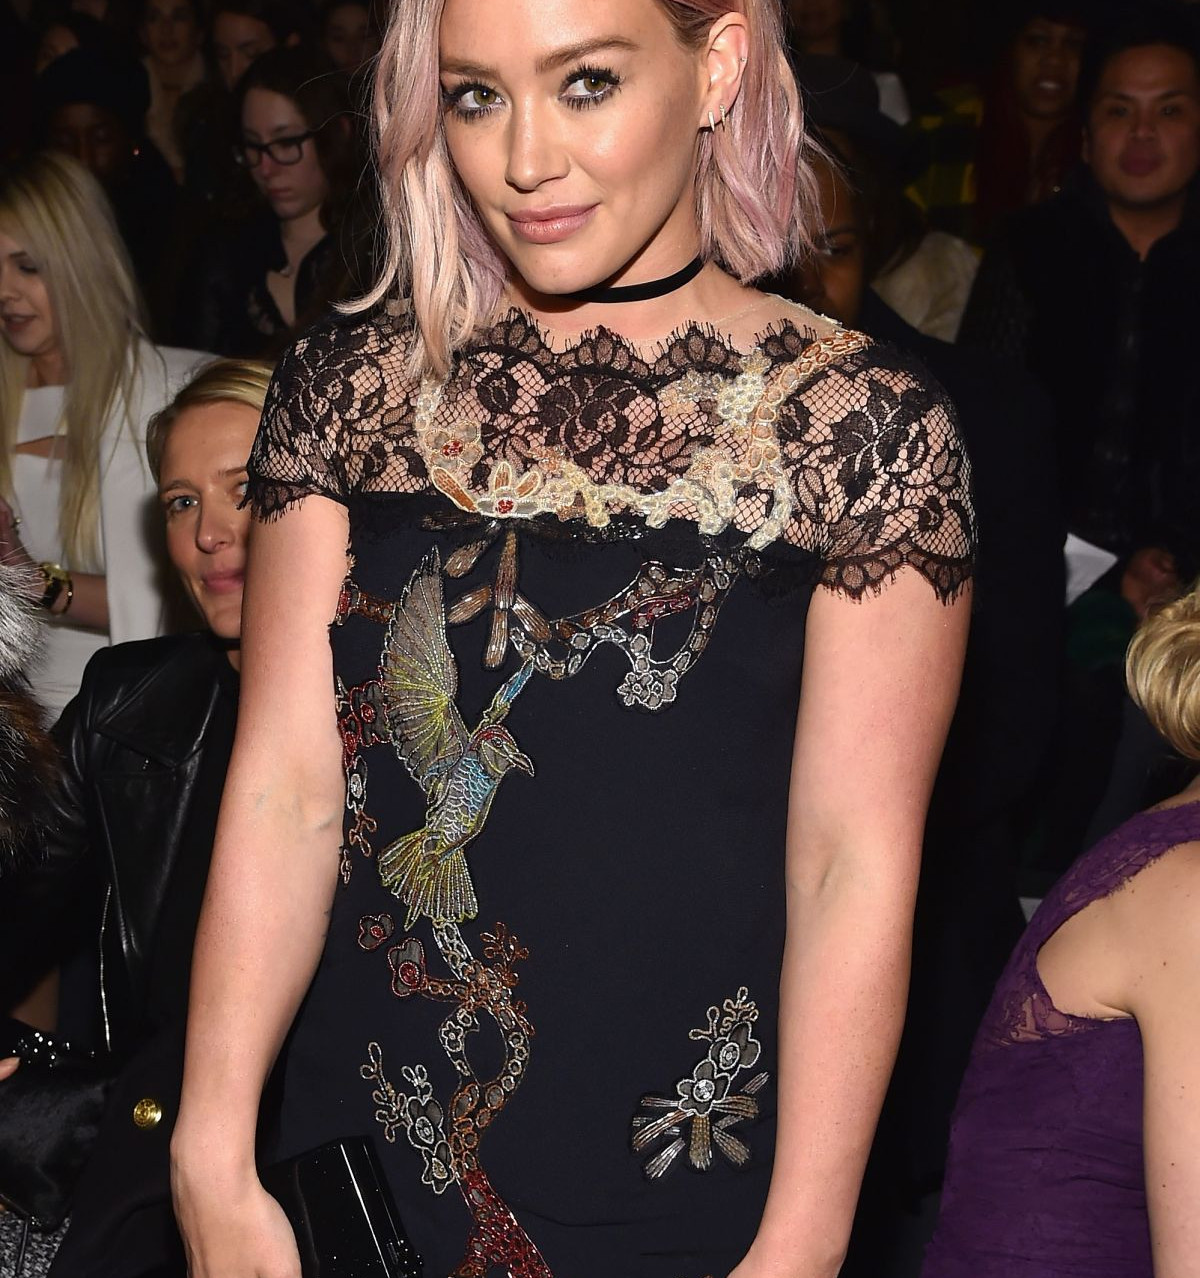 hilary-duff-at-monique-lhuillier-fall-2016-fashion-snow-at-new-york-fashion-week-02-13-2016_1